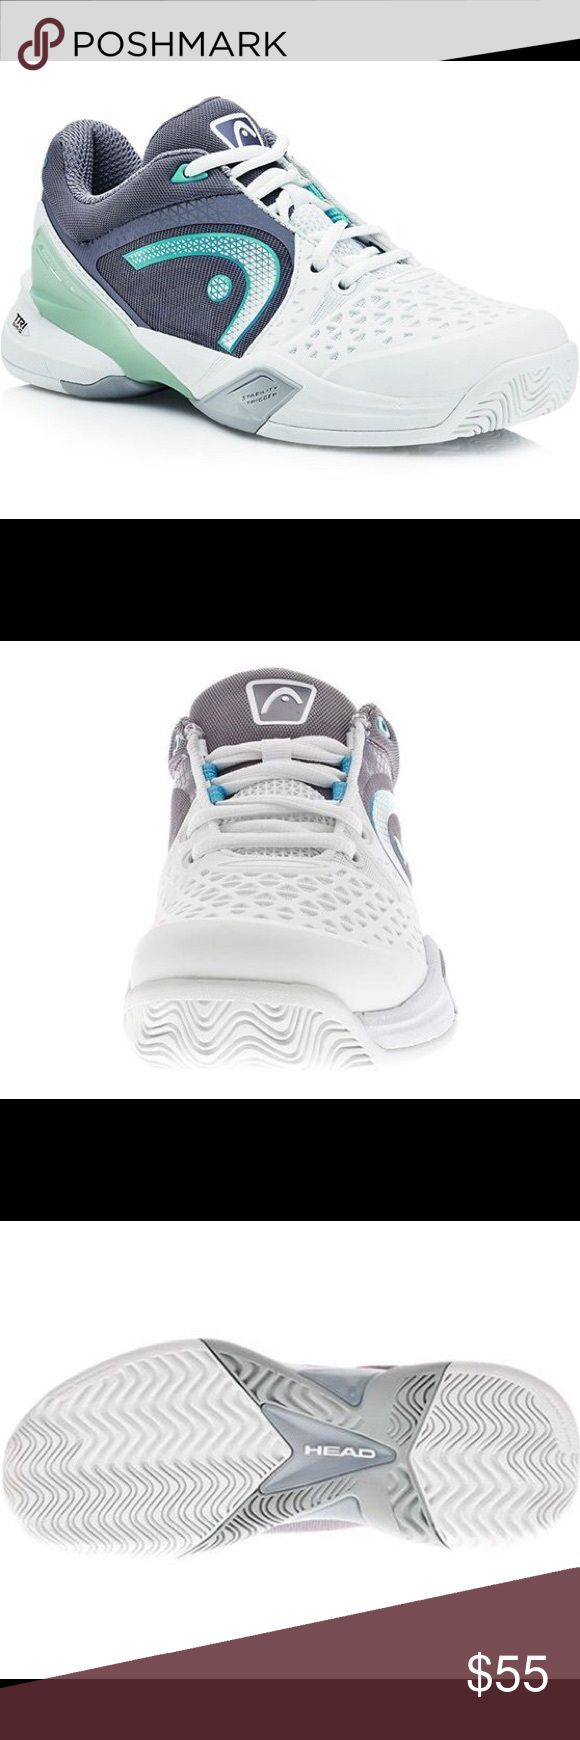 HEAD Women's Revolt Pro Tennis Shoes size 8 Upper  High resistant TPU injected vamp HEAD Perfect Fit collar/tongue foam Comfortable mesh sock-construction Wrapping lacing-system Dual density sockliner Lateral stability HEAD Energy Frame with forefoot outtrigger Outsole  HEAD Hybrasion+™ rubber combound TPU 3D anti-torsion shank with forefoot spring EVA midsole Non-marking rubber Allcourt profile HEAD TRI-NRG head revolt pro Shoes Sneakers